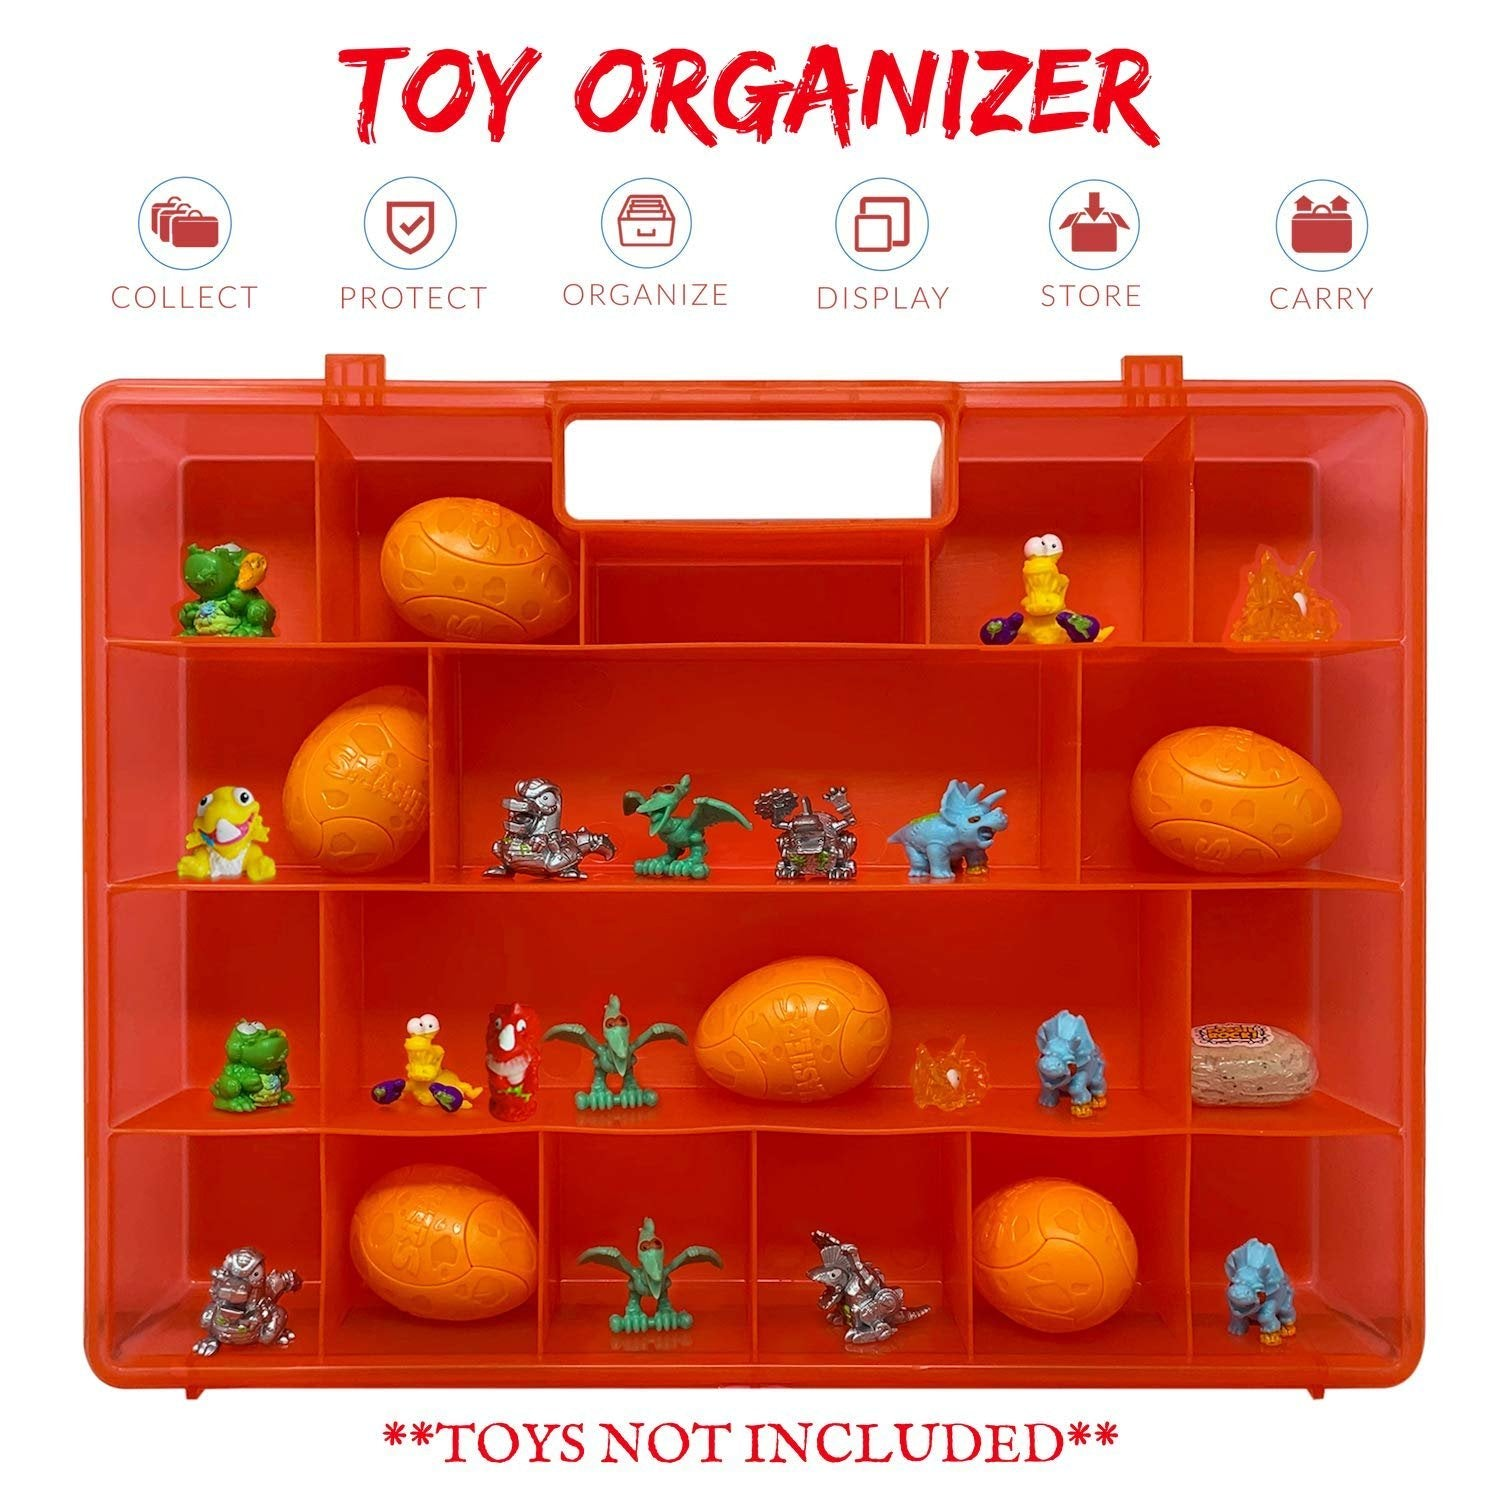 Life Made Better All-in-One Toy Organizer, Storage & Kid Travel Case, Compatible with Smashers Dino Dino Egg Figures, Toy Accessory by LMB